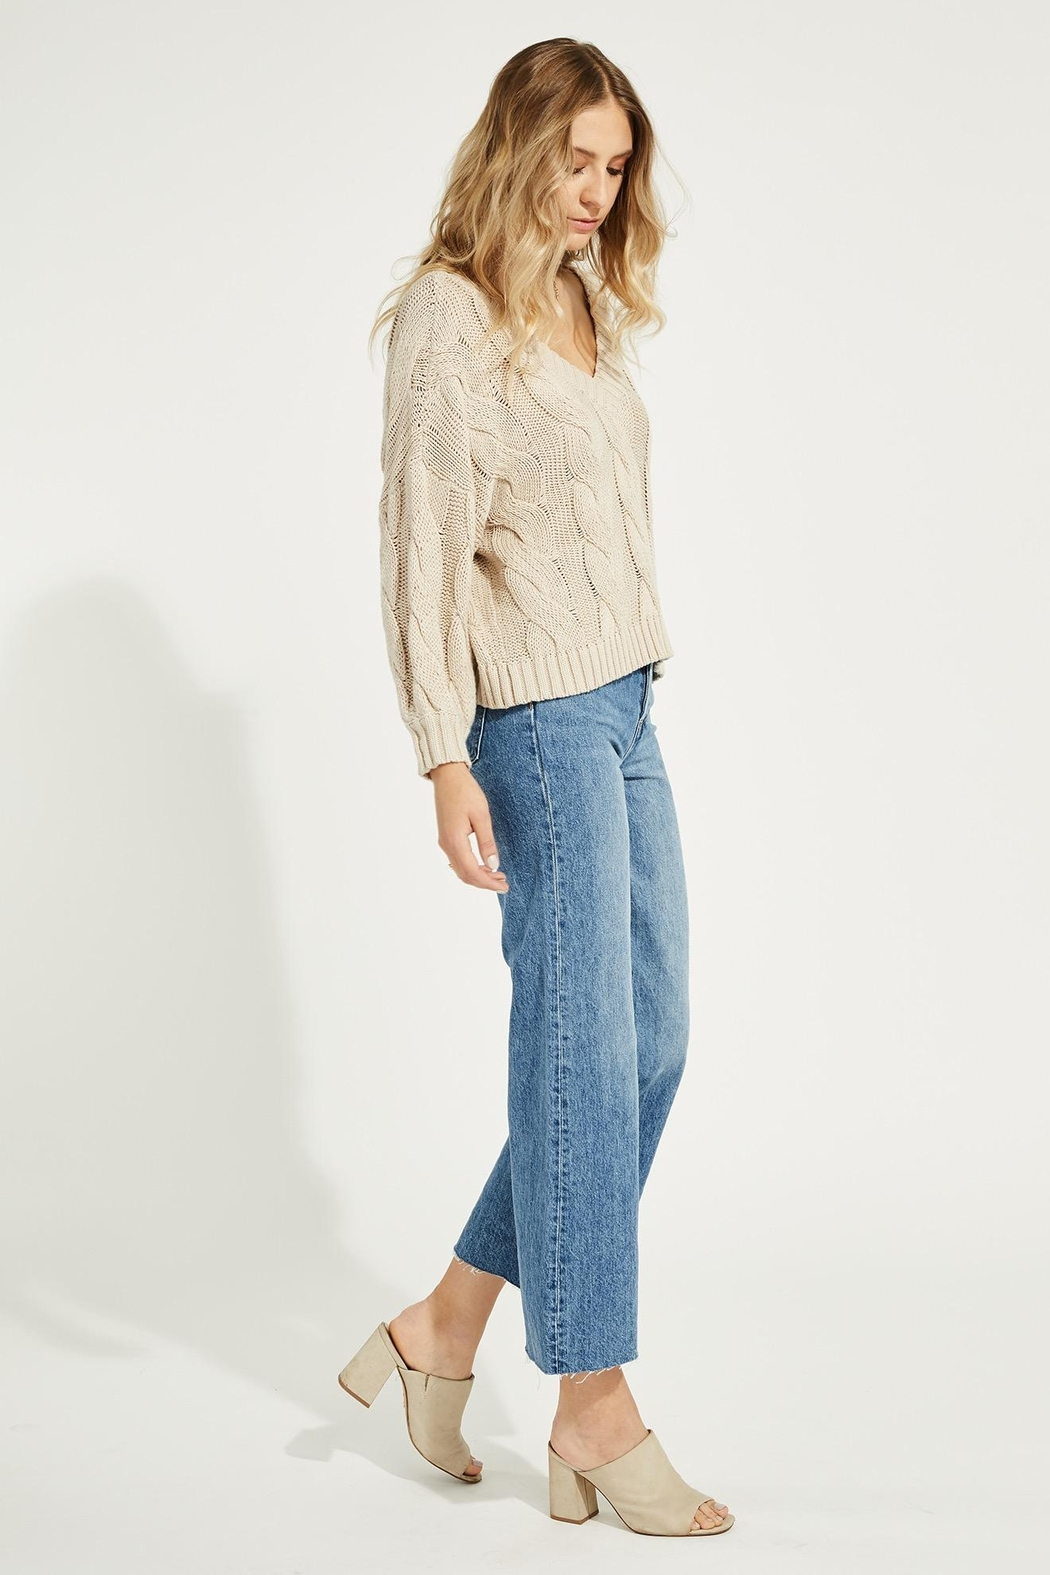 Gentle Fawn Heritage Cotton Sweater - Front Full Image